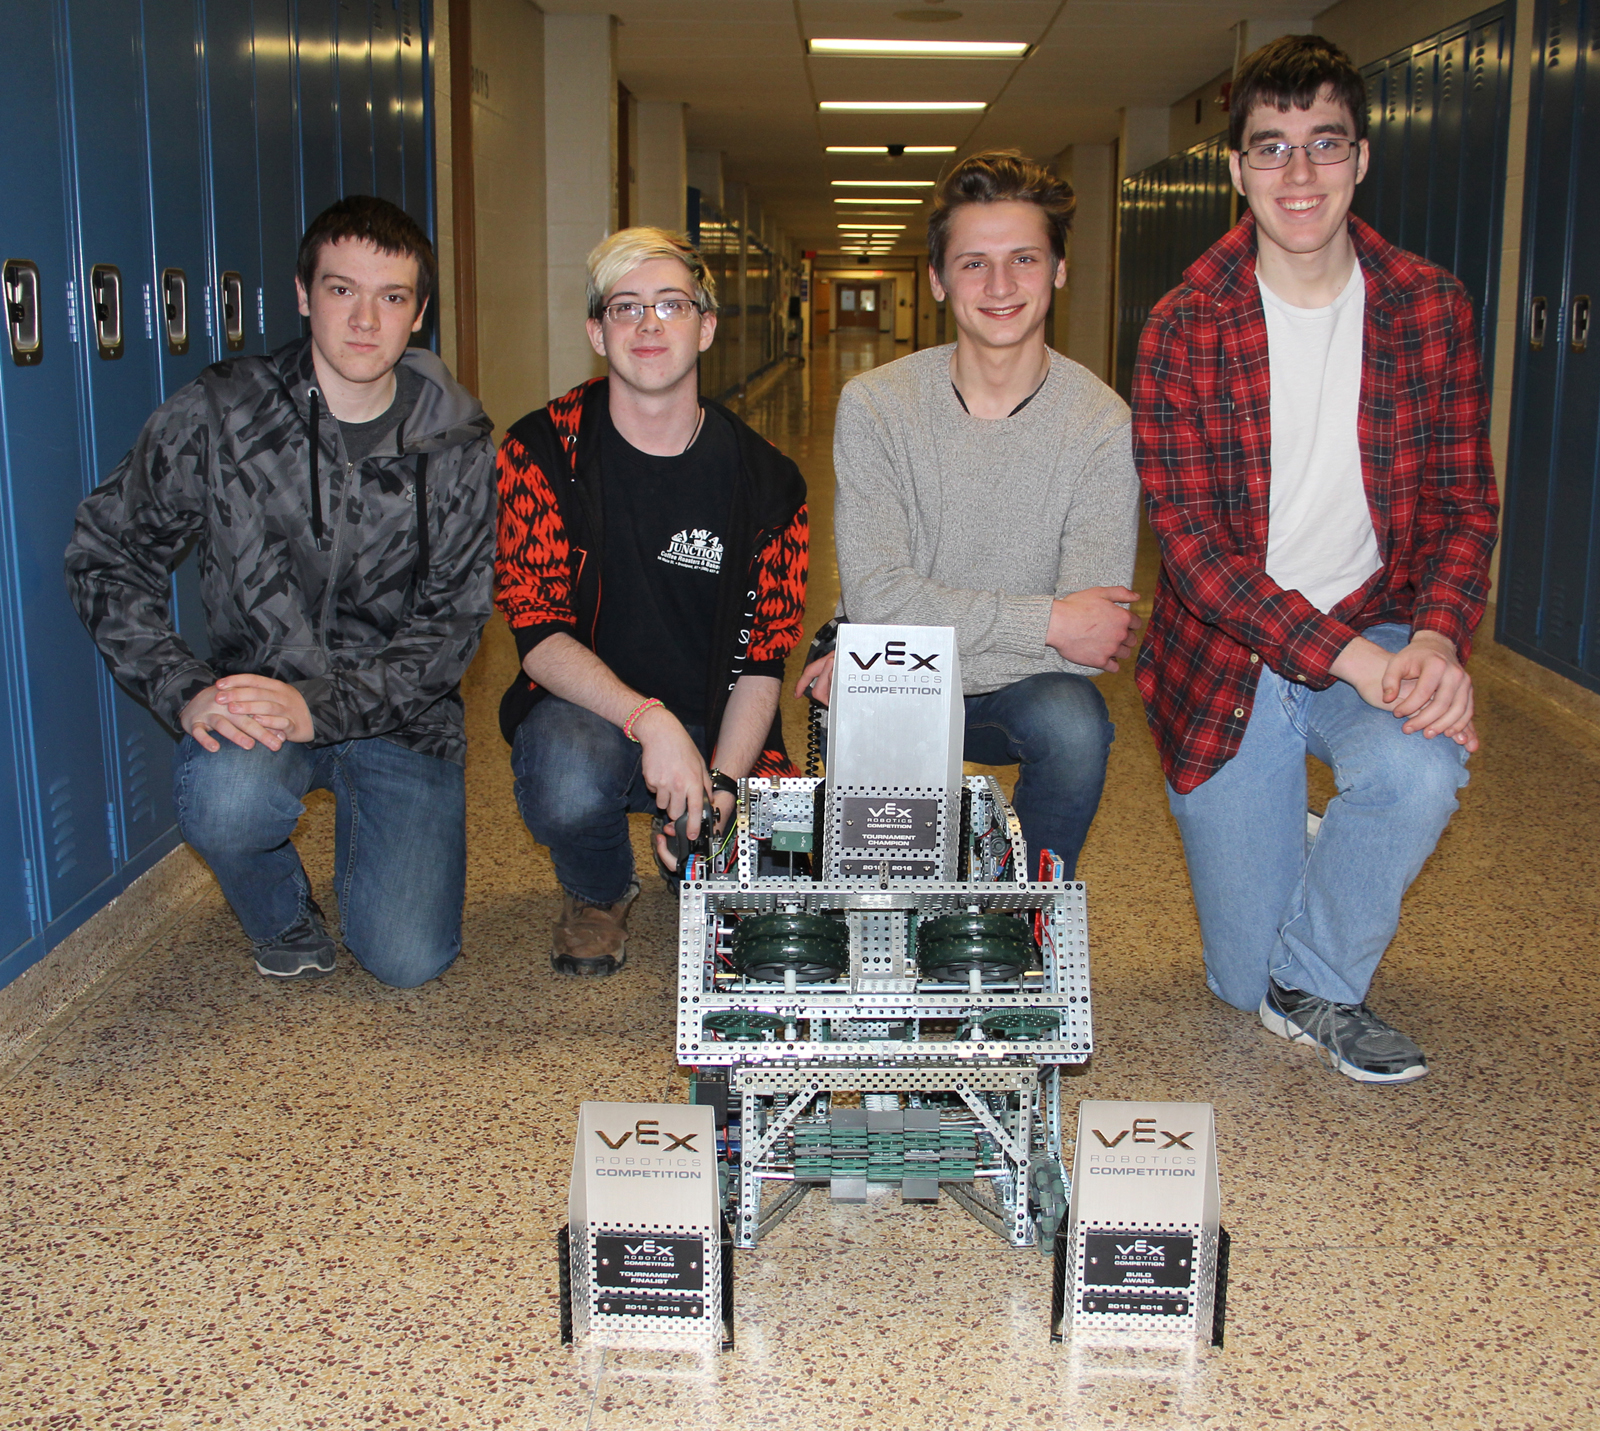 Eric Toepper, Connor Noble, William Levchuk and Dan Fletcher show off their robot and trophies. Provided photo